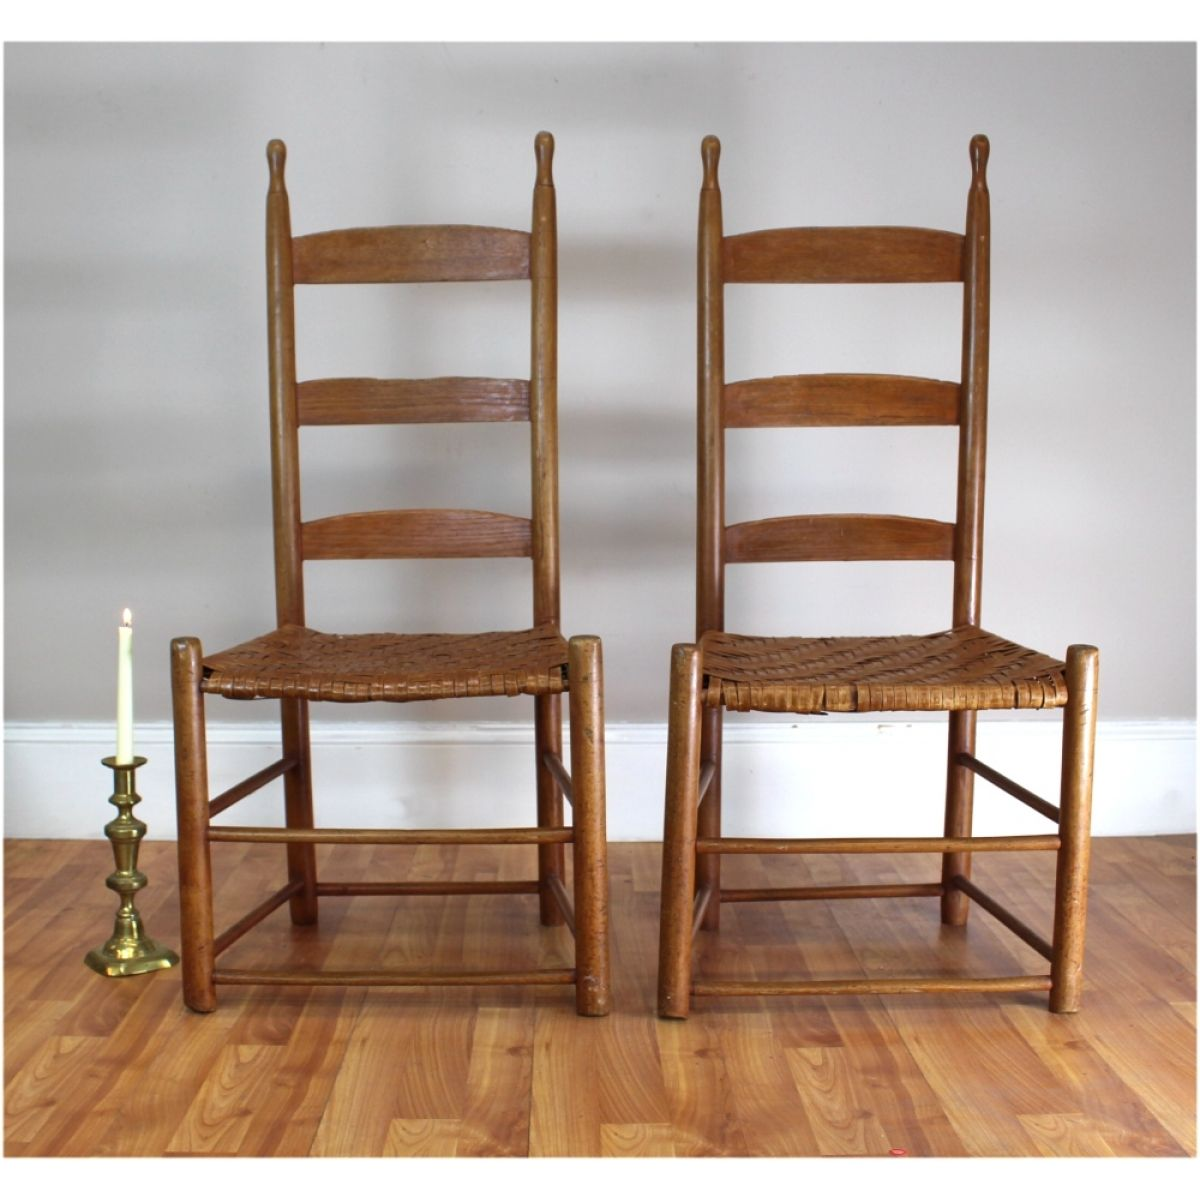 Antique shaker chairs - Antique Shaker Ladderback Ladder Back Pair Of Chair Split Wood Seats Very Rare